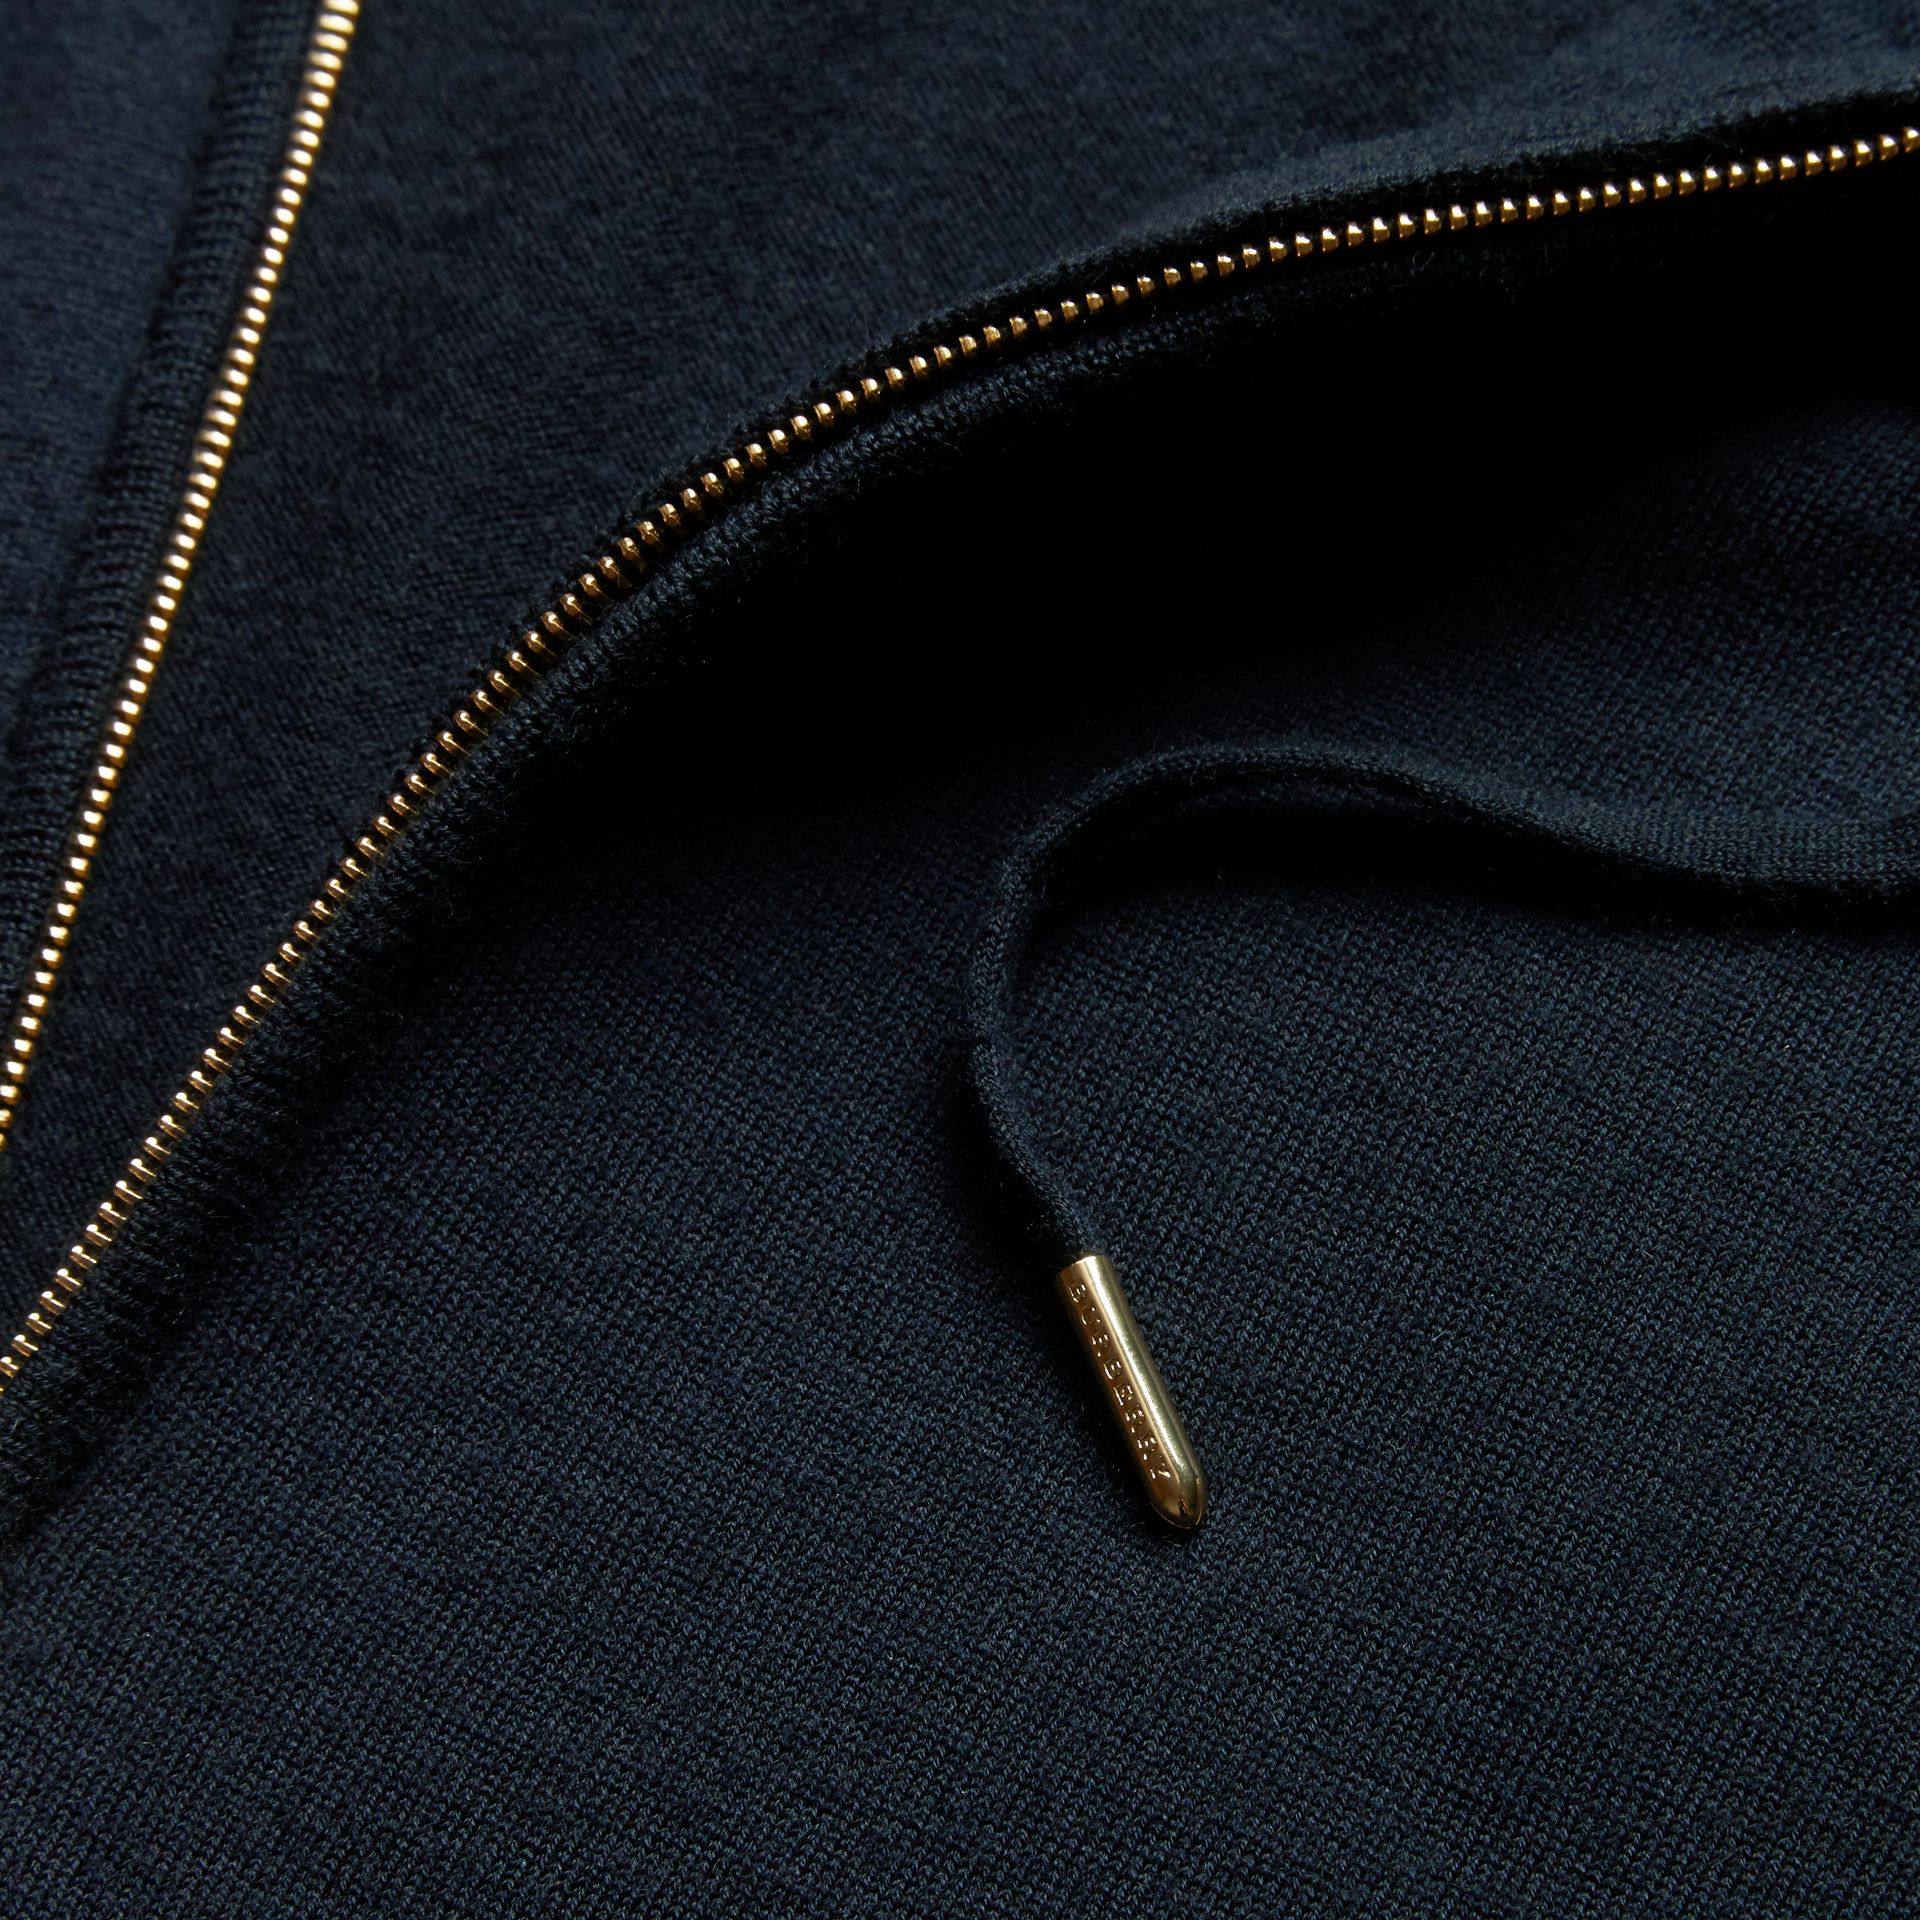 Navy Two-tone Cashmere Hooded Top - gallery image 2